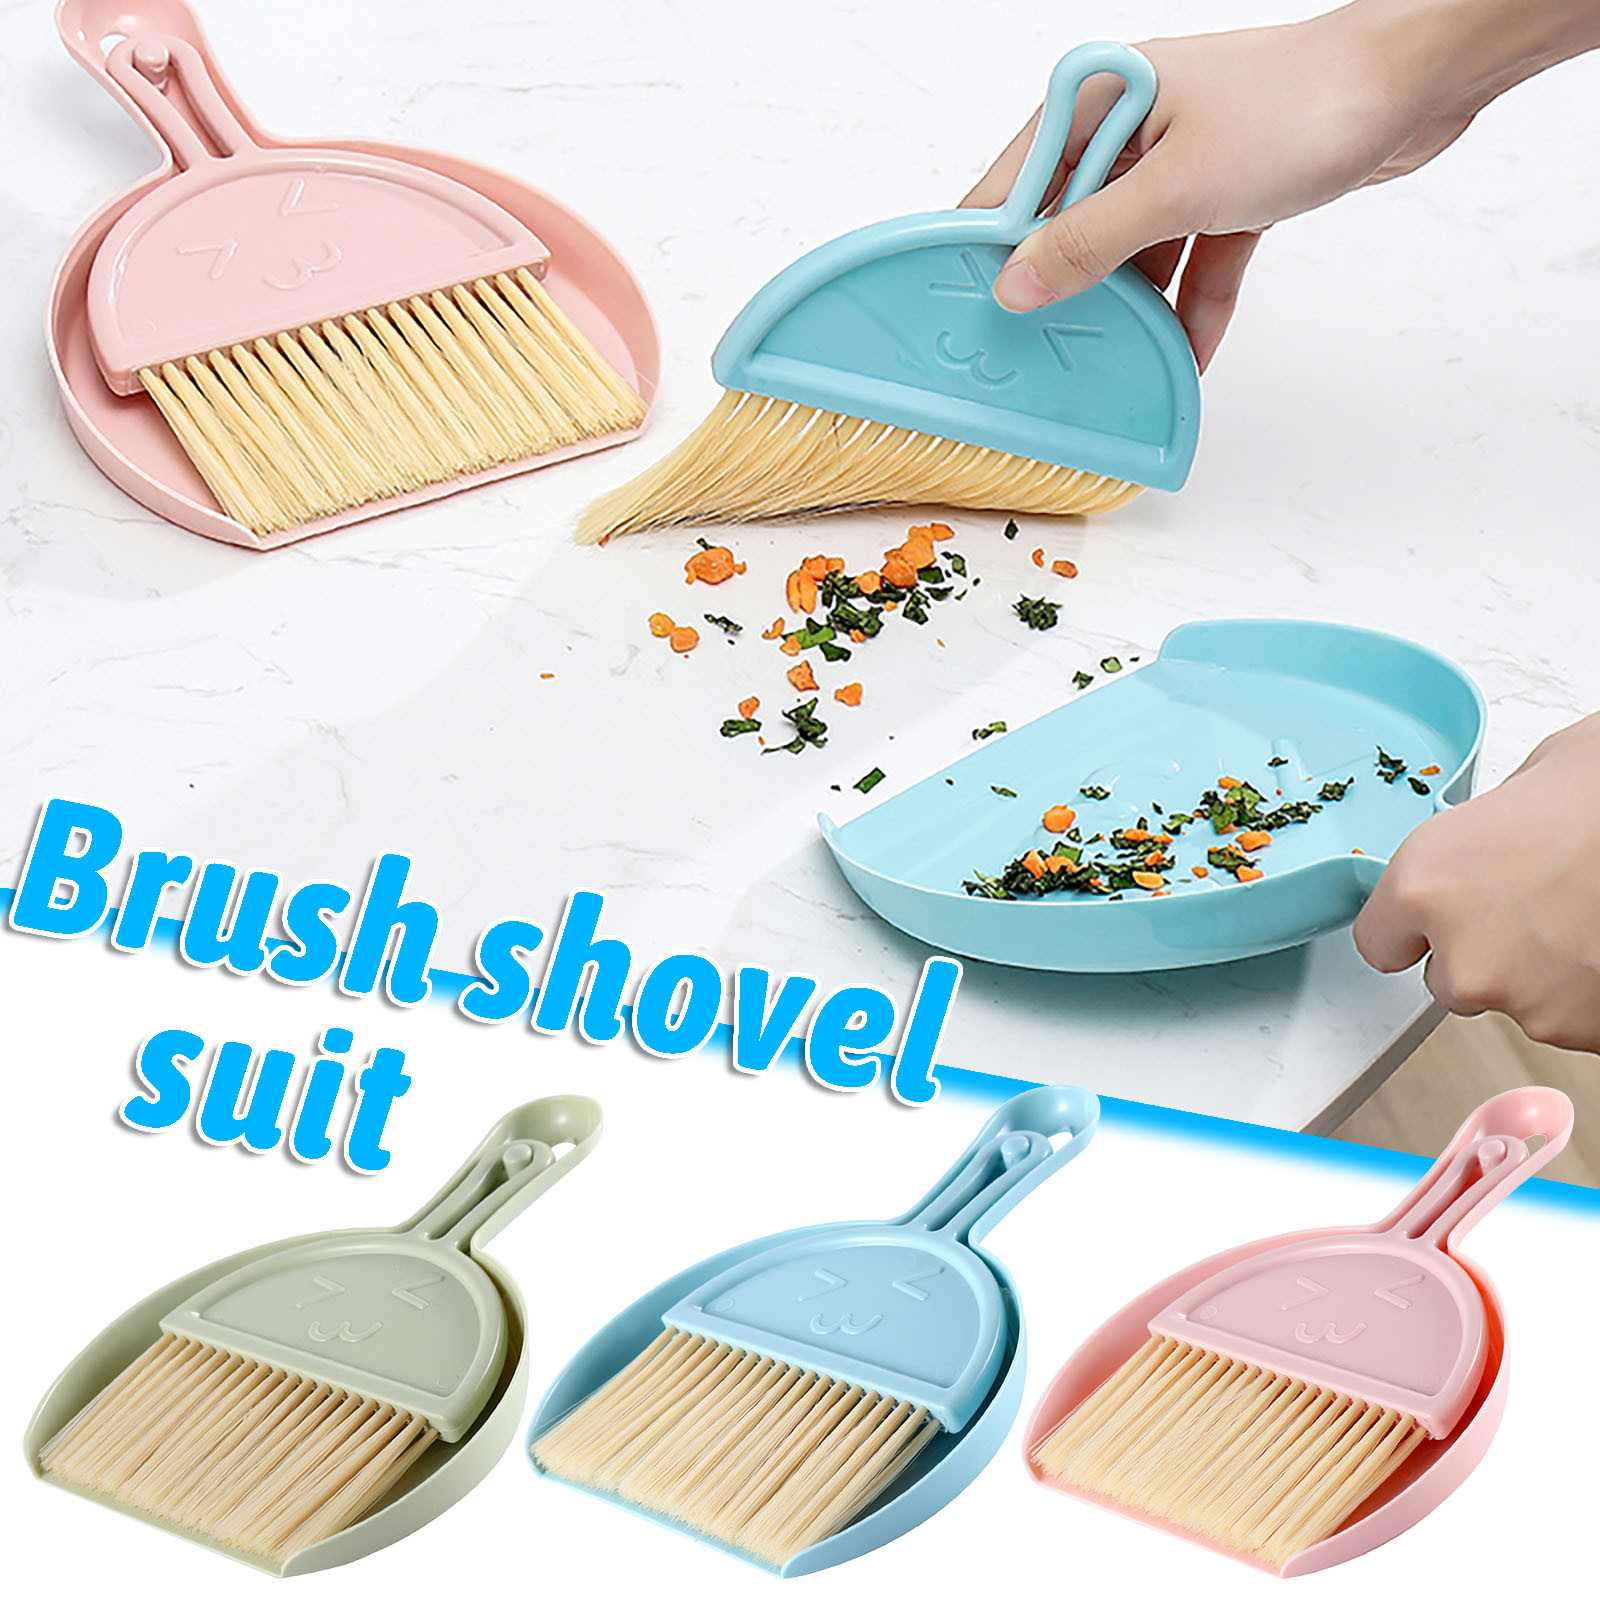 Sporting Mini Desktop Sweeping And Cleaning Brush Small Cleaning Brush And Pan Set Are Used To Clean The Table Sofa And Car Equipment